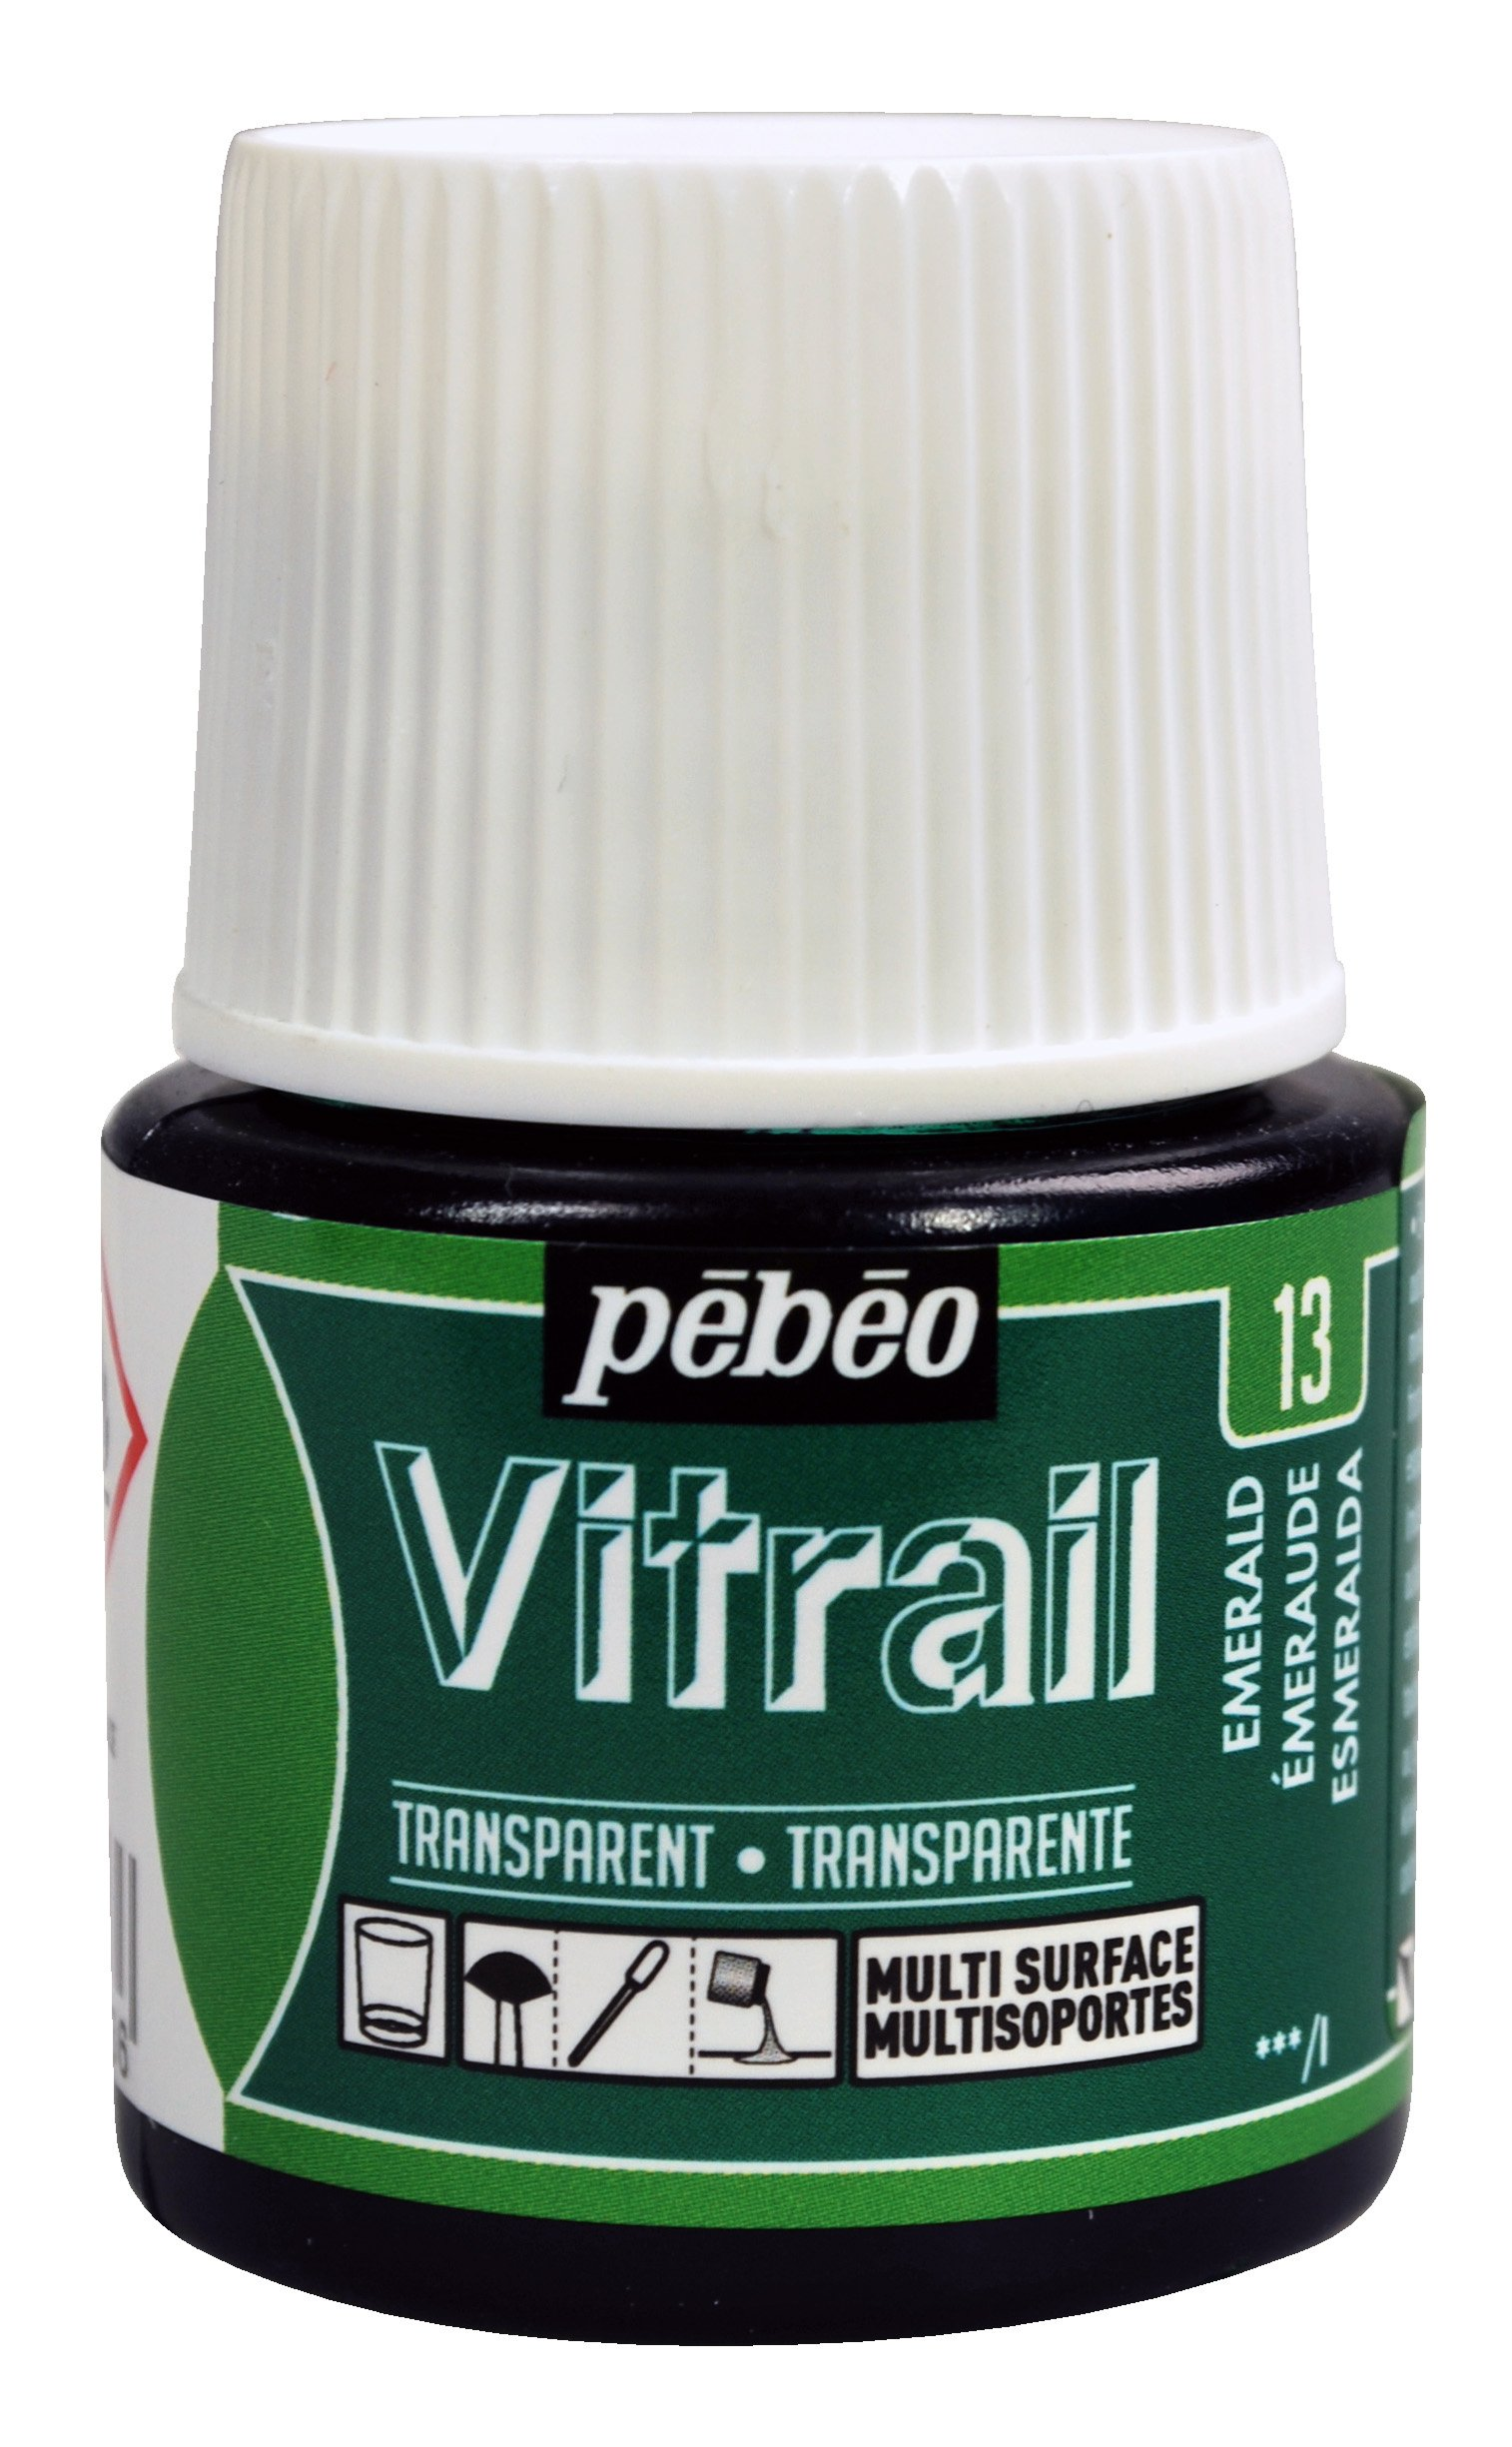 Pebeo Vitrail, Stained Glass Effect Paint, 45 ml Bottle - Emerald